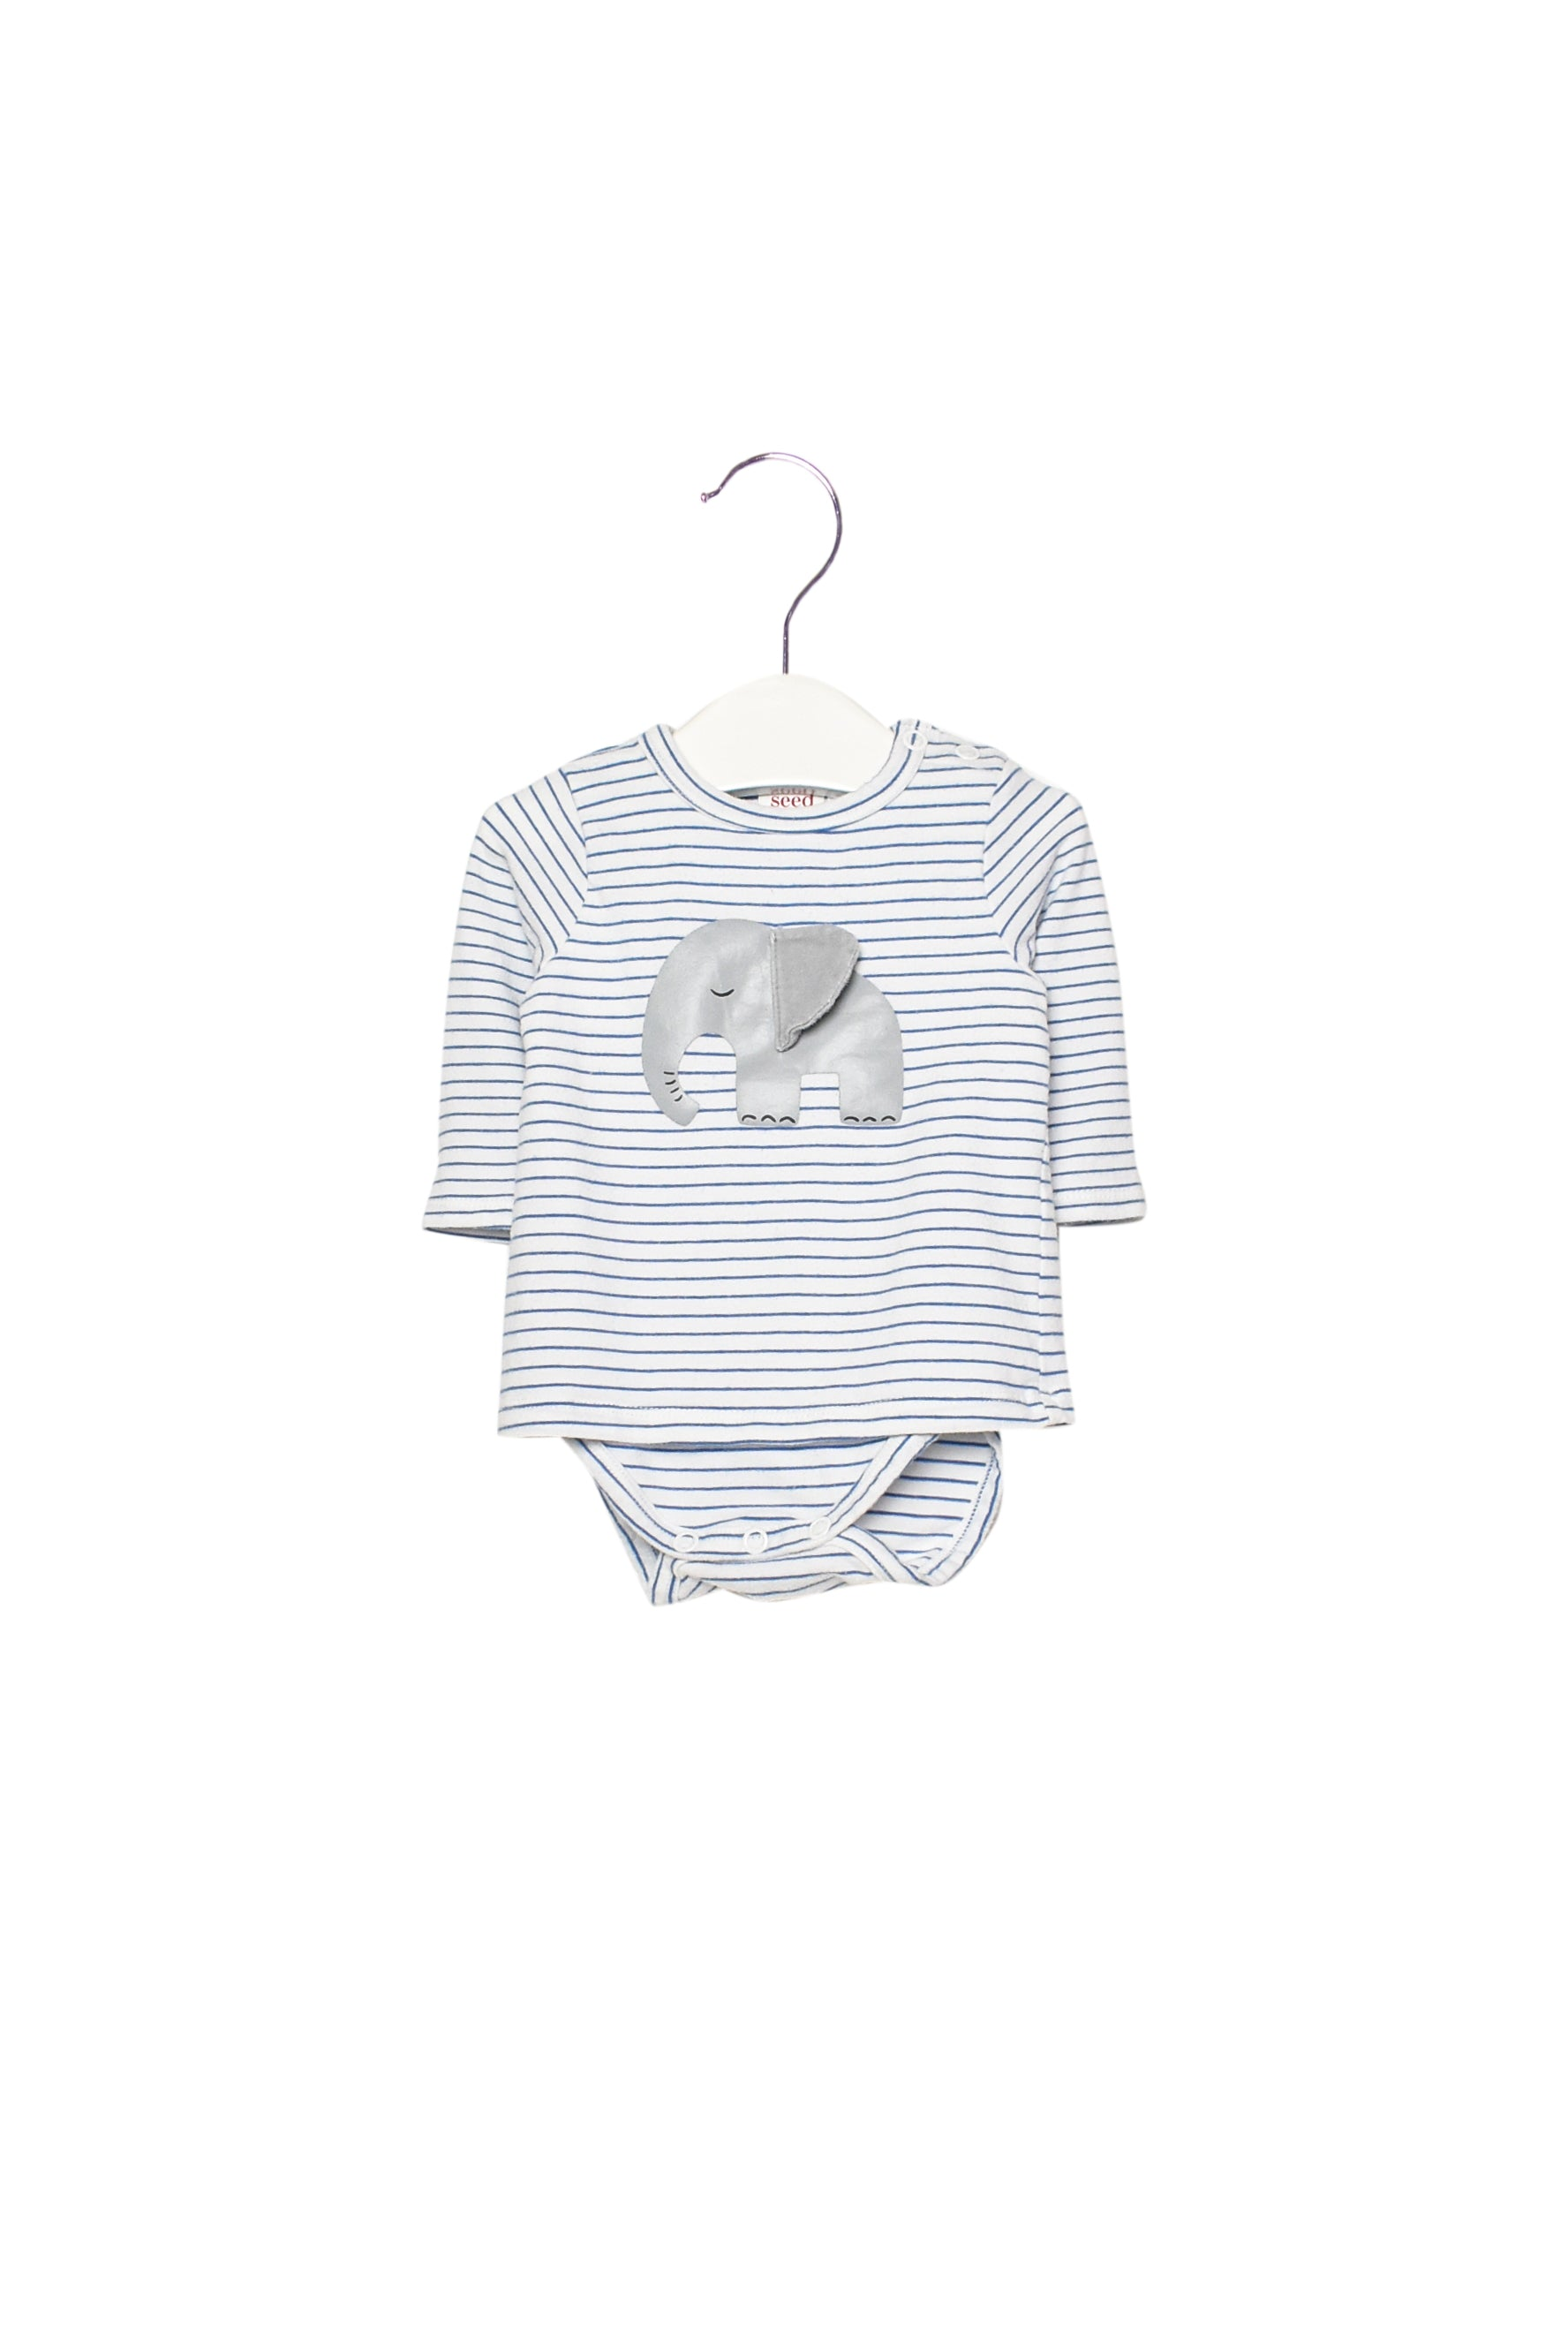 10011963 Seed Baby ~ Bodysuit NB at Retykle